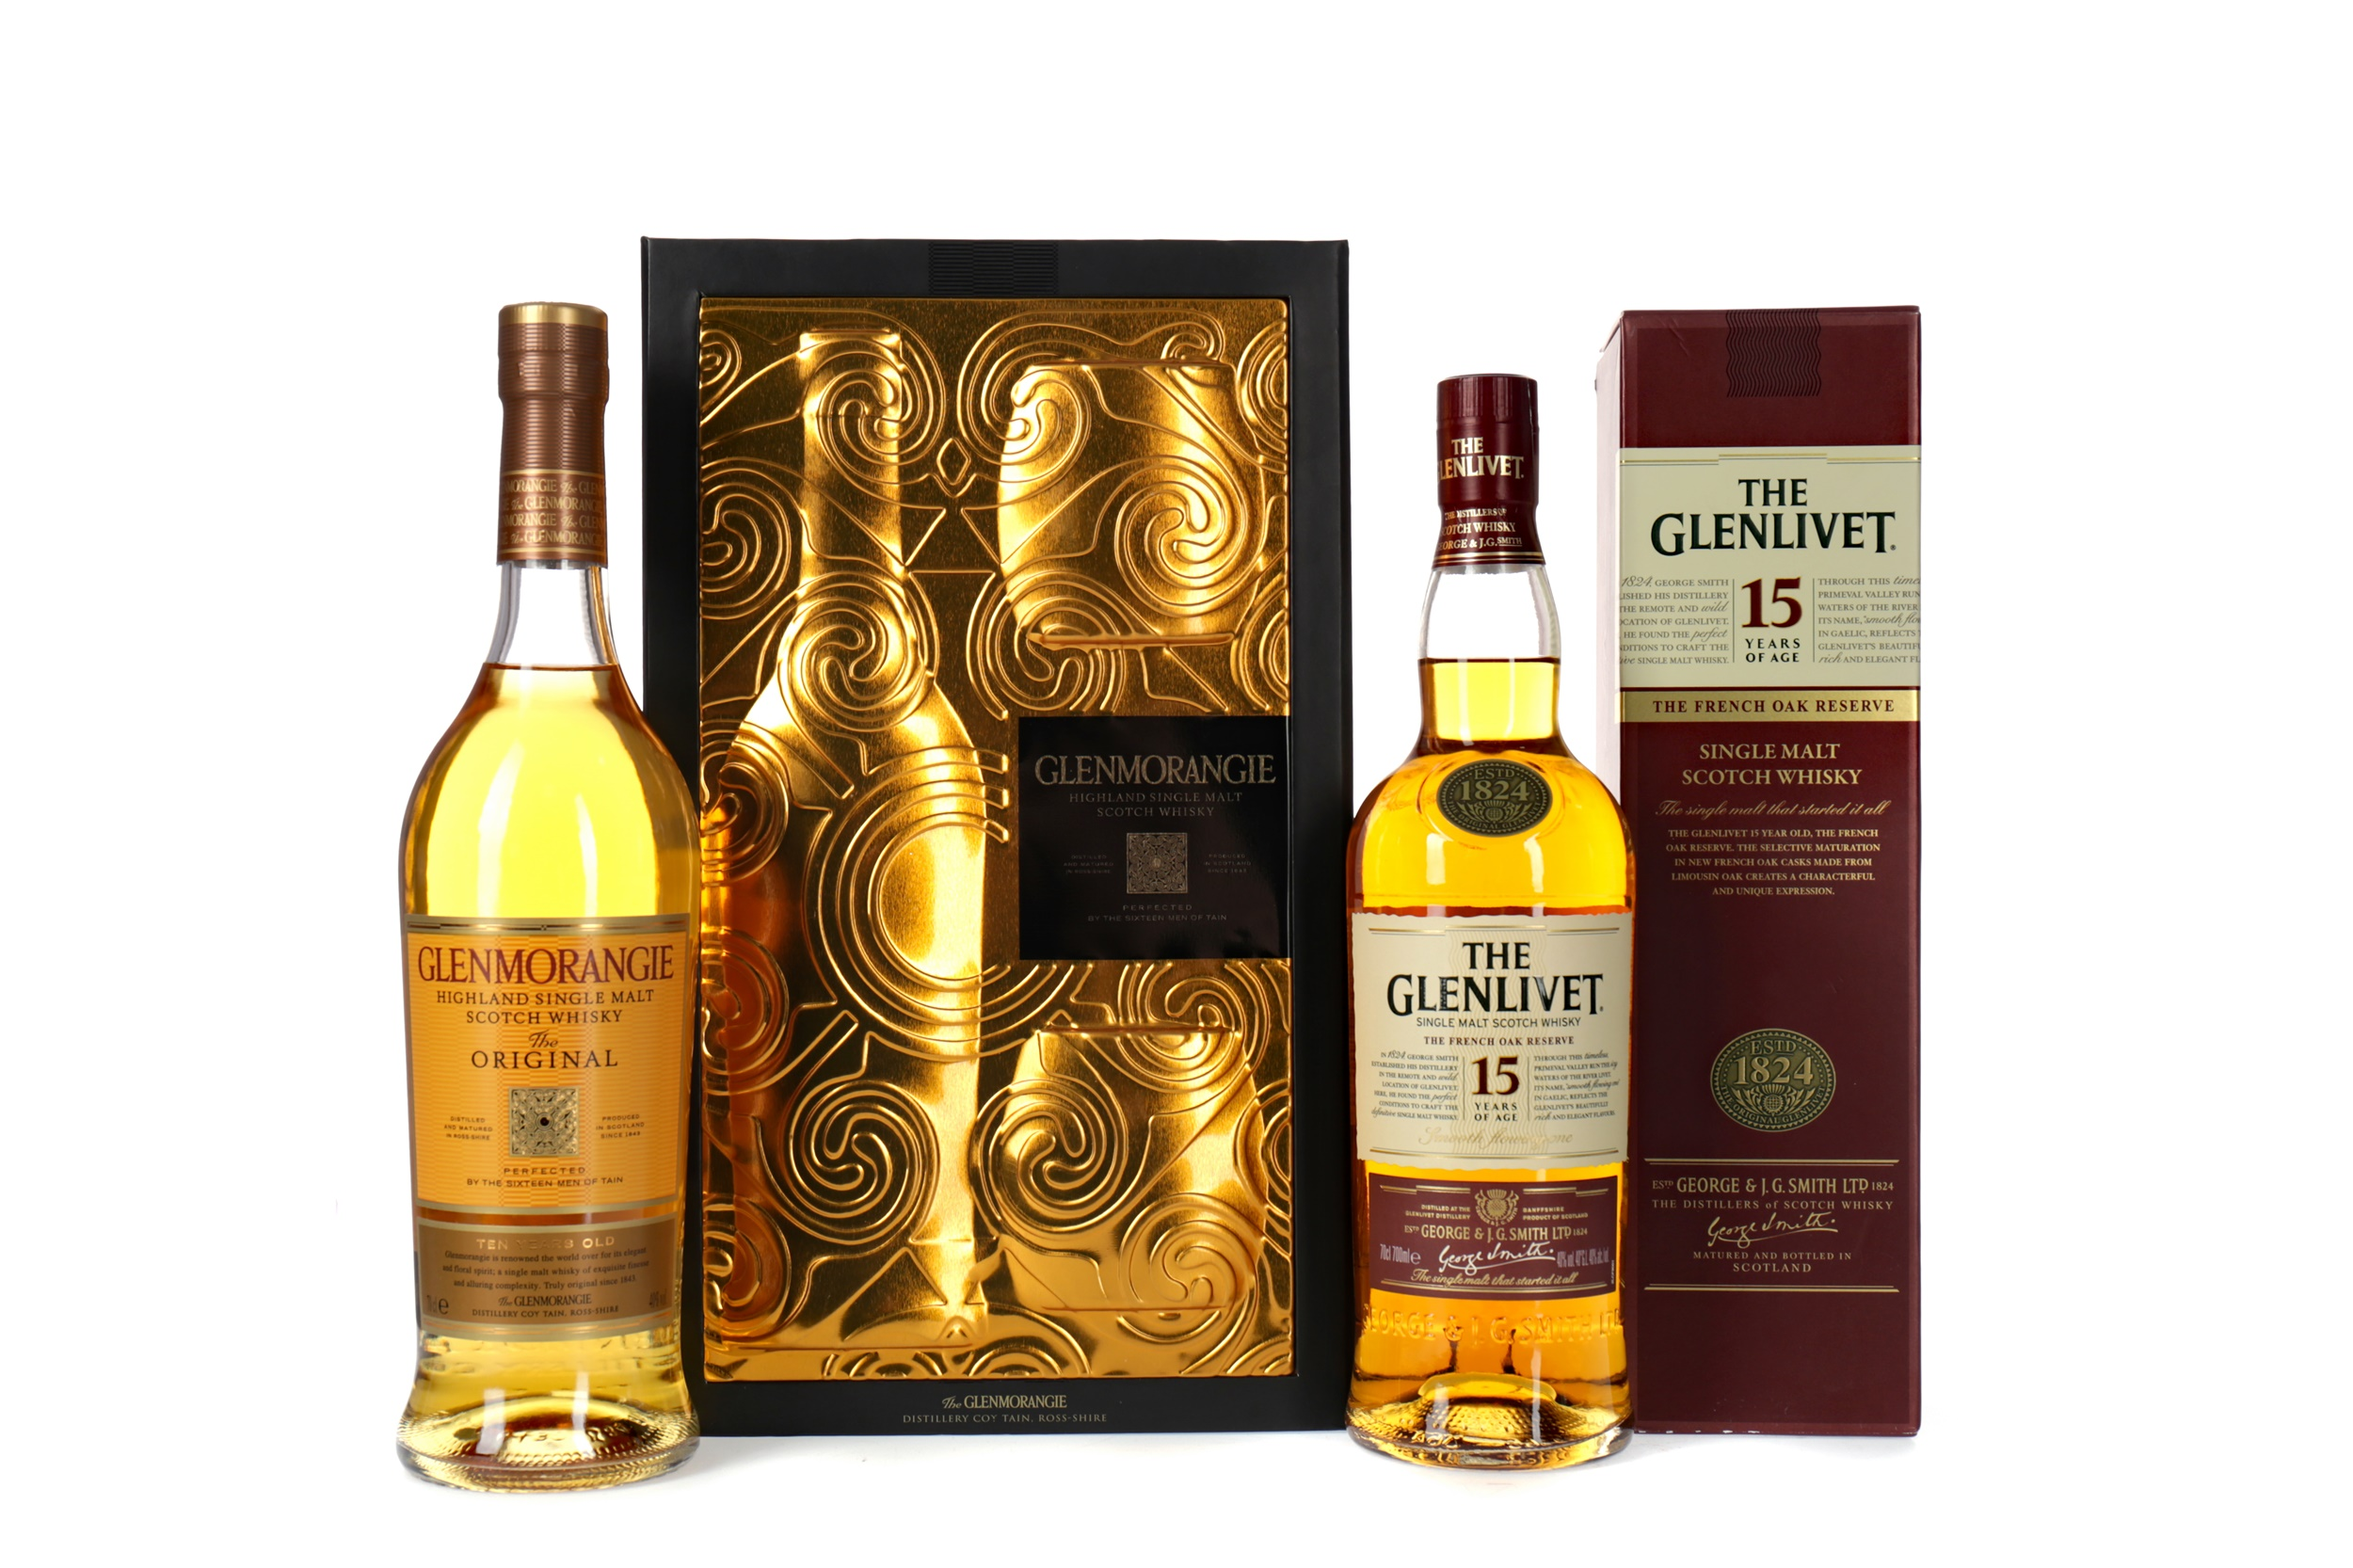 GLENMORANGIE 10 YEARS OLD GLASS PACK AND GLENLIVET FRENCH OAK RESERVE 15 YEARS OLD